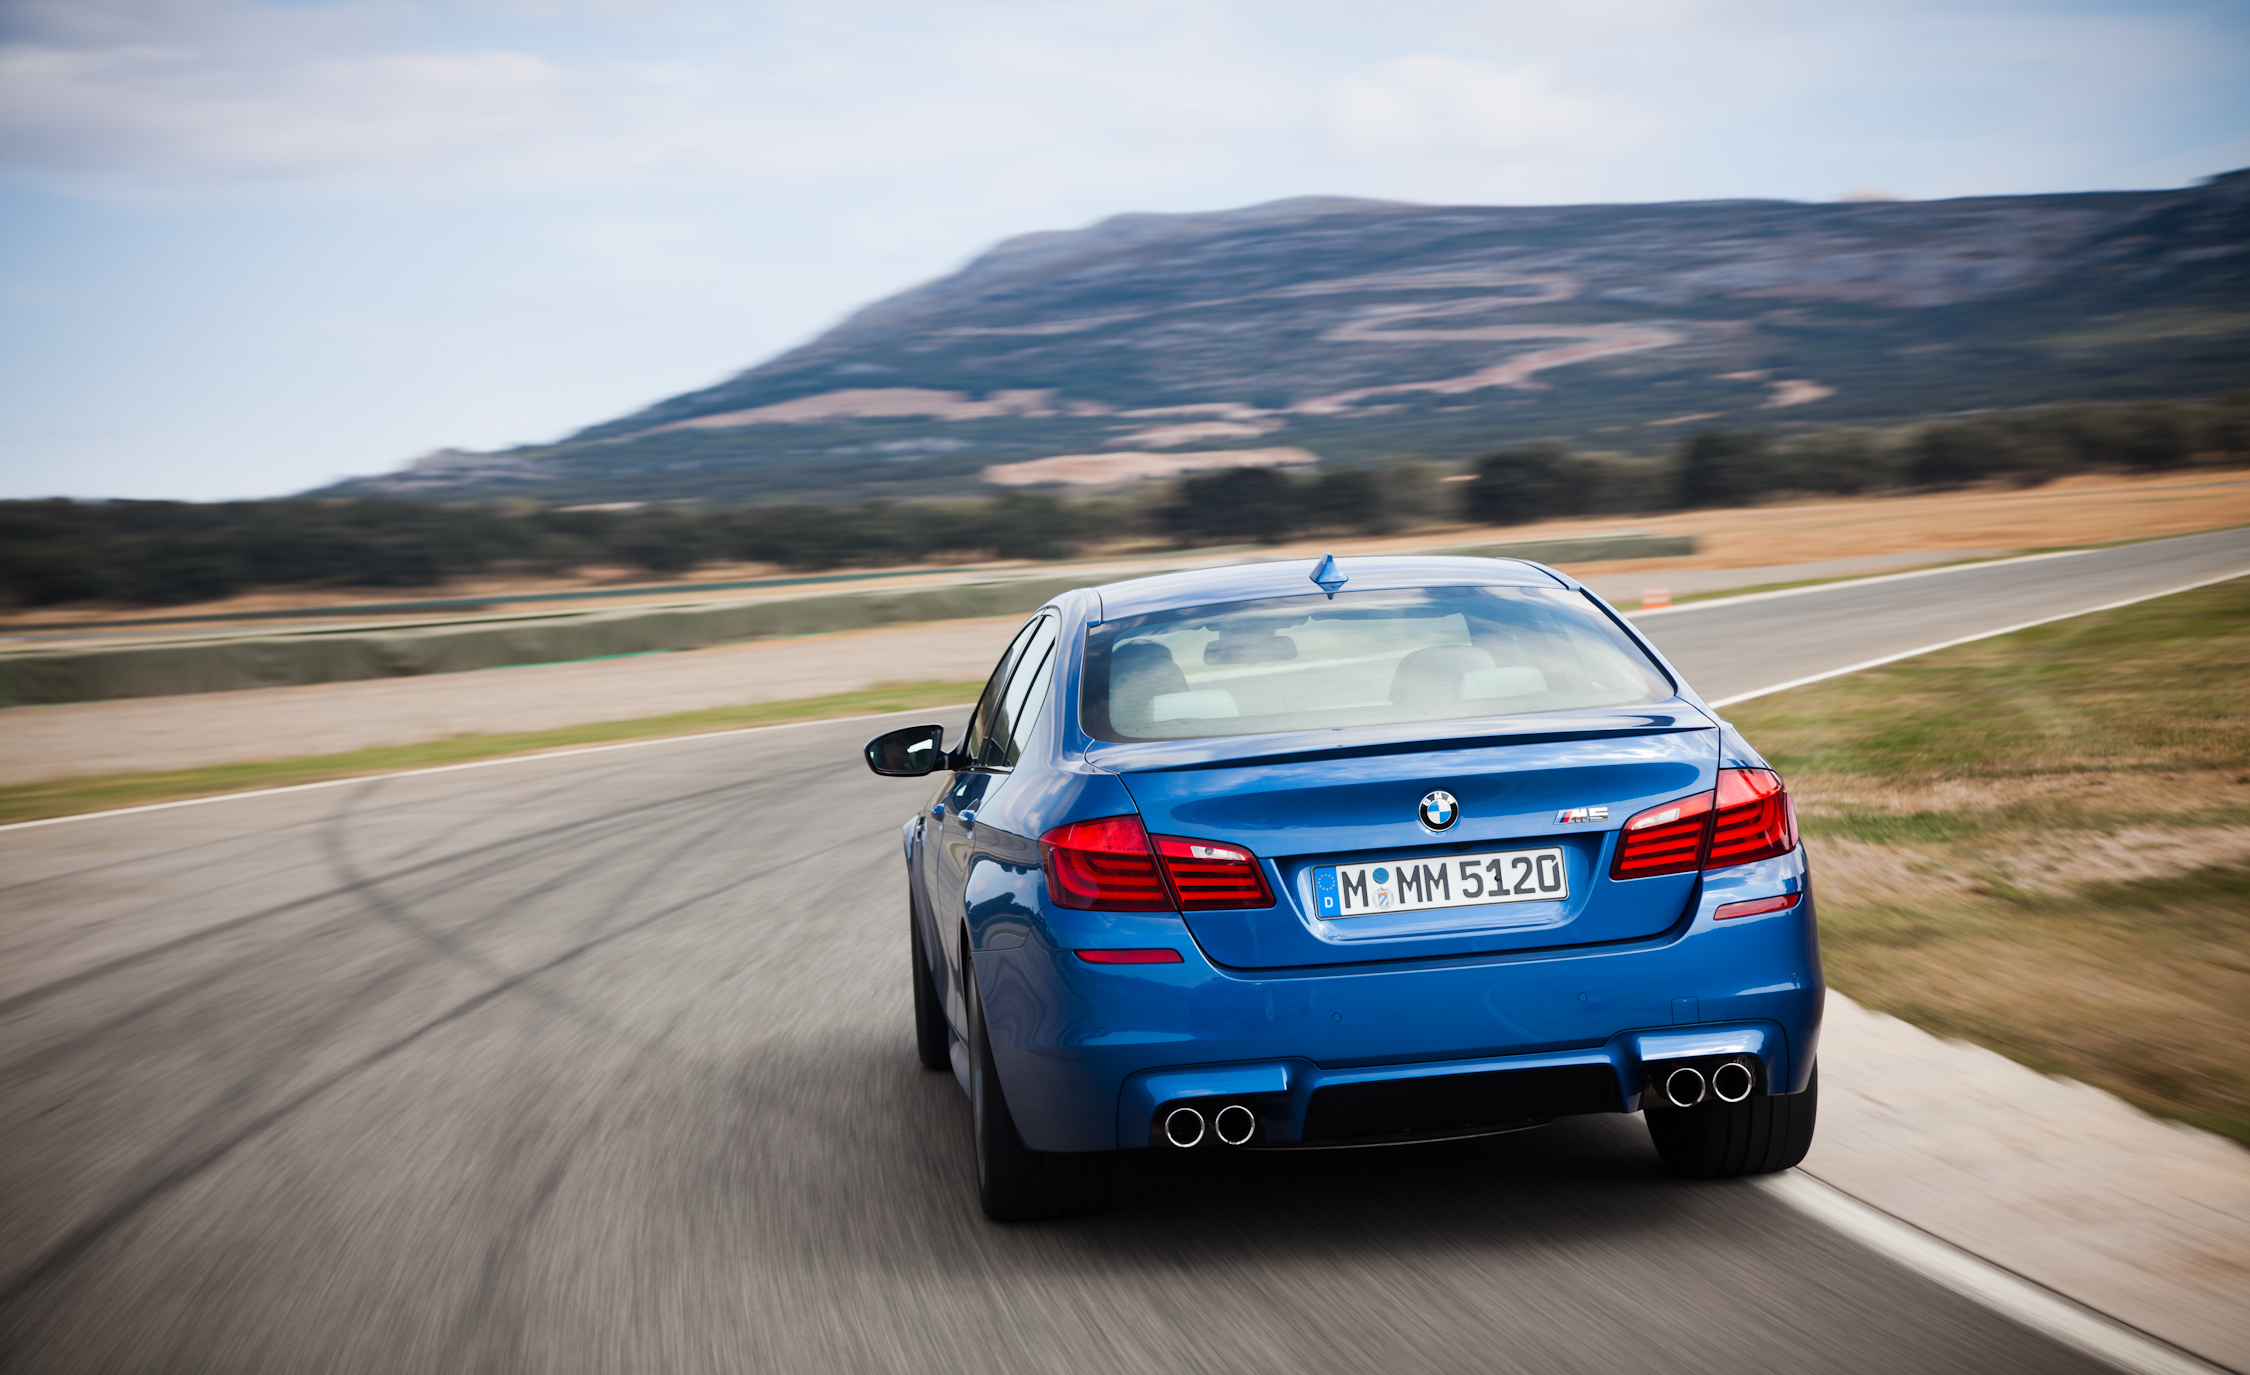 2013 BMW M5 Test Drive Rear View (View 4 of 22)